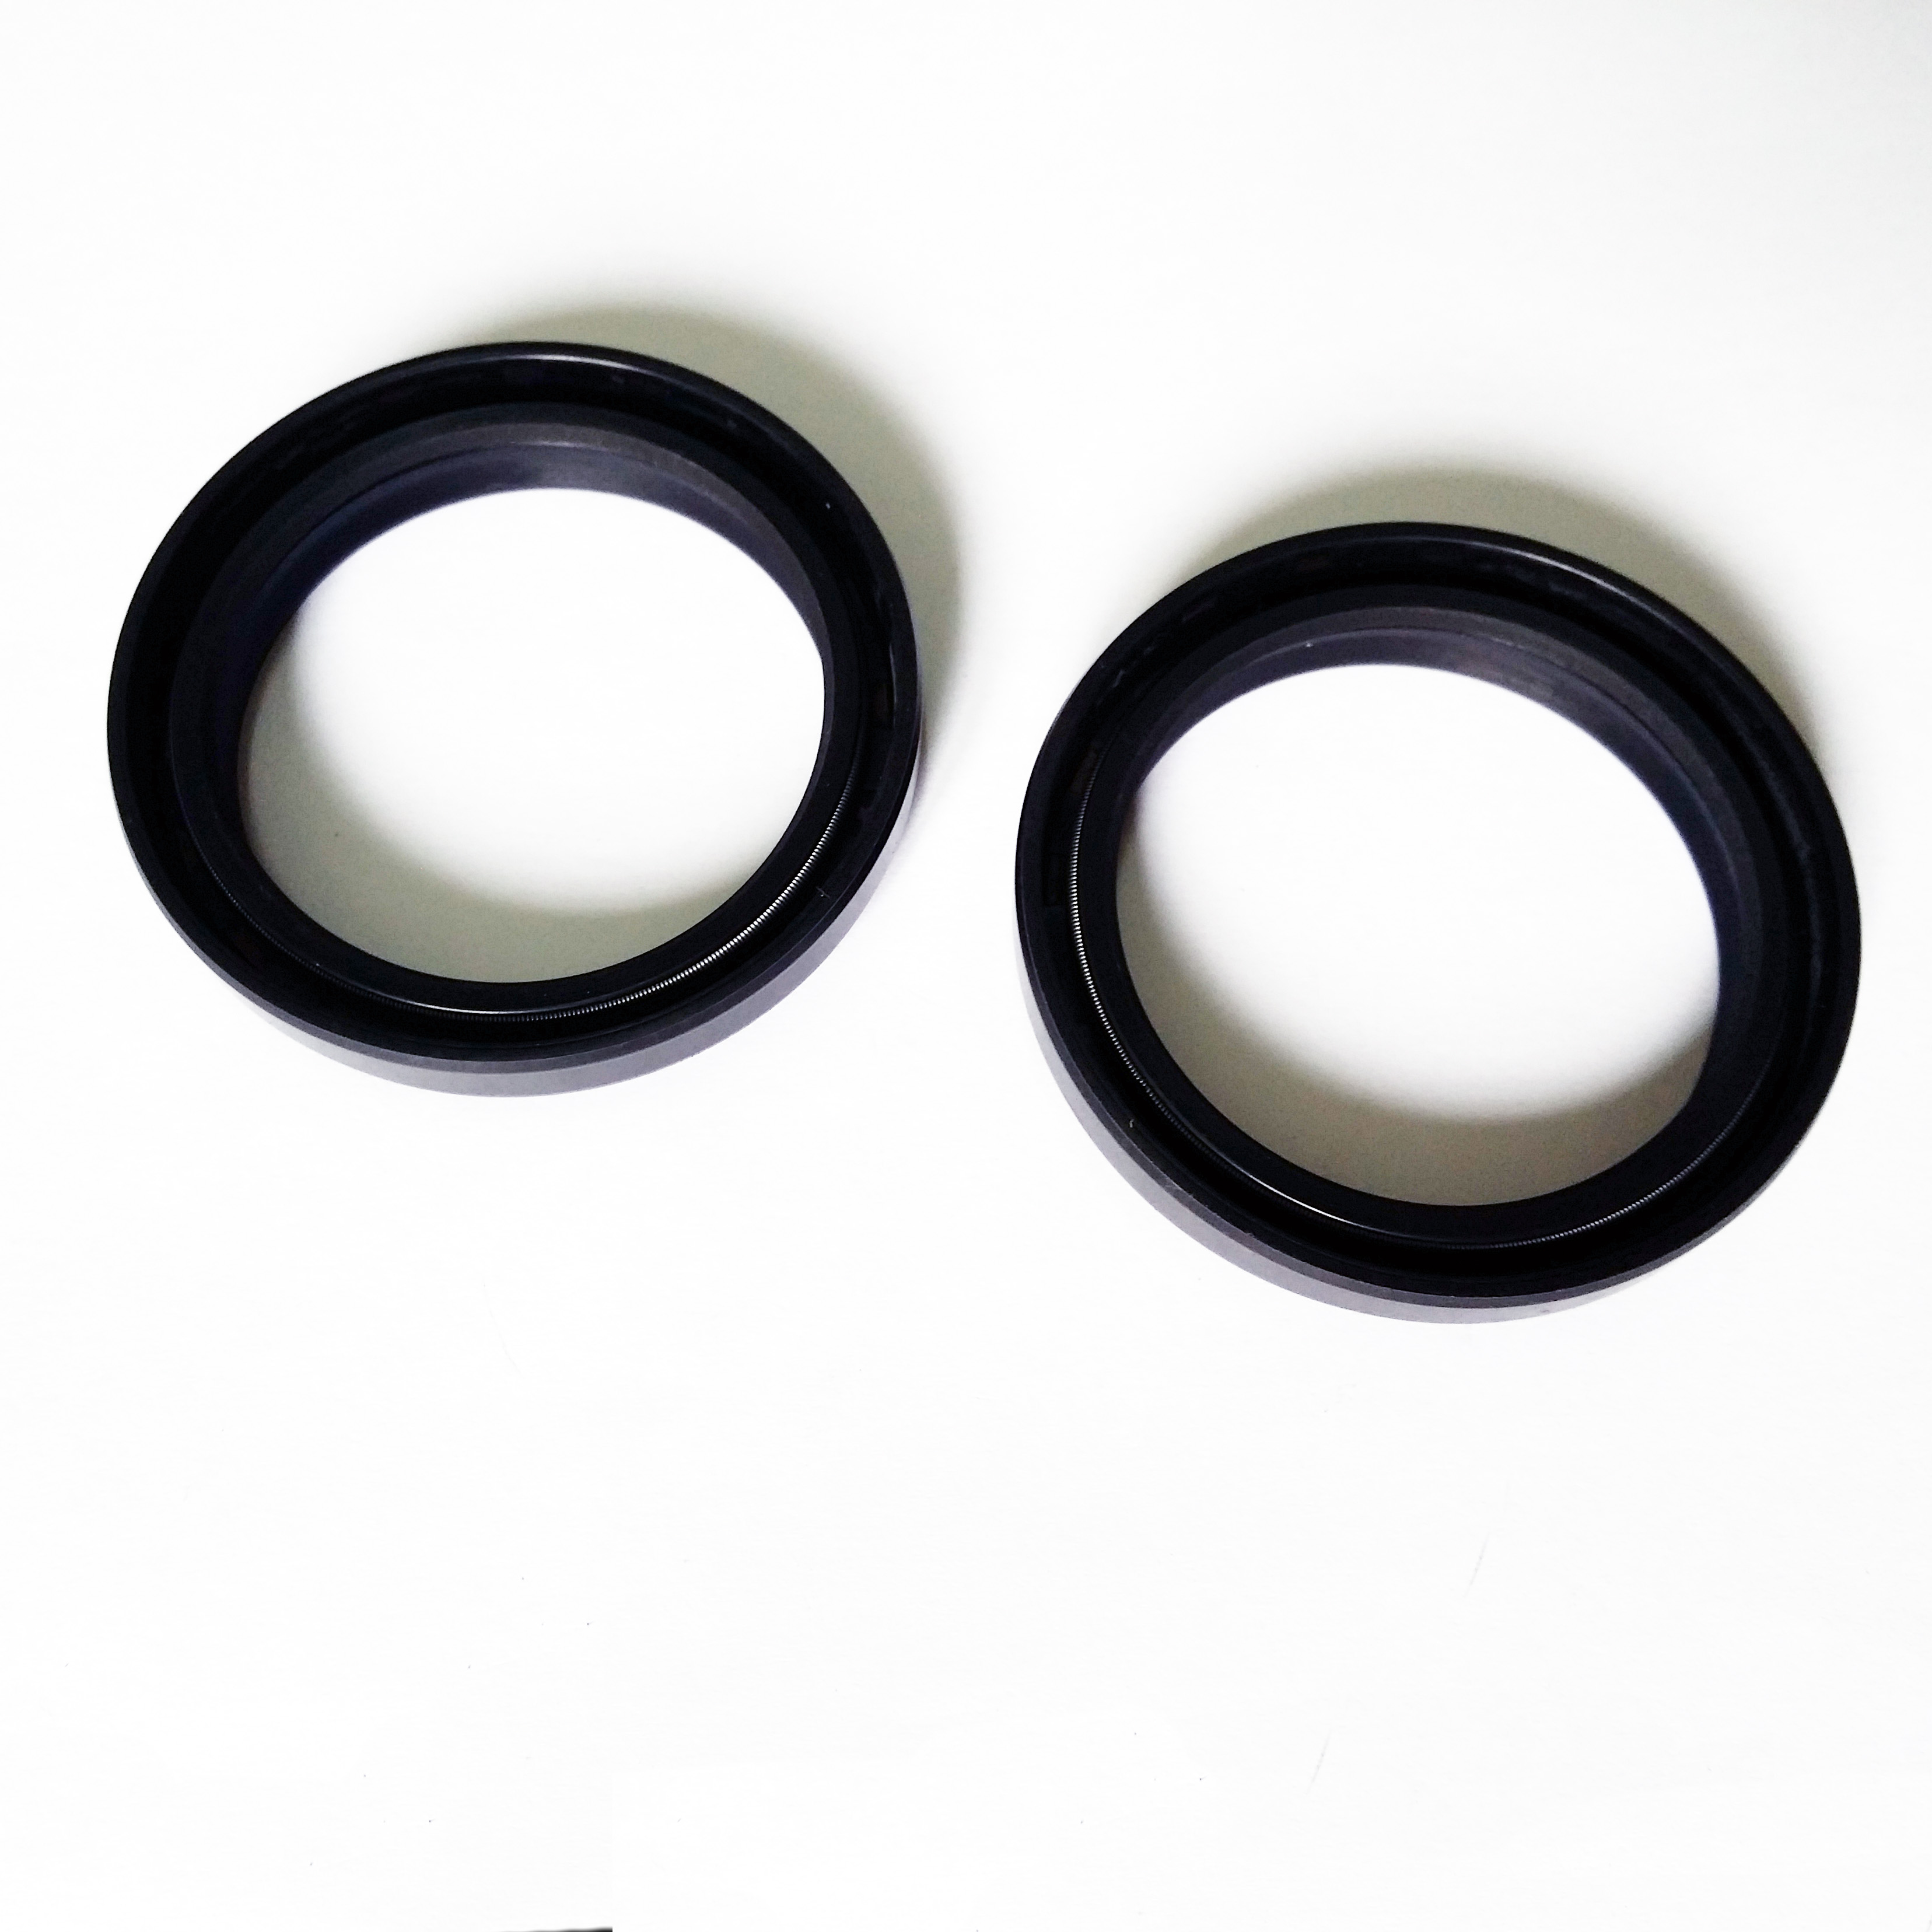 K-Tech Beta 250RR 2013-2016 NOK Front Fork Oil Seals